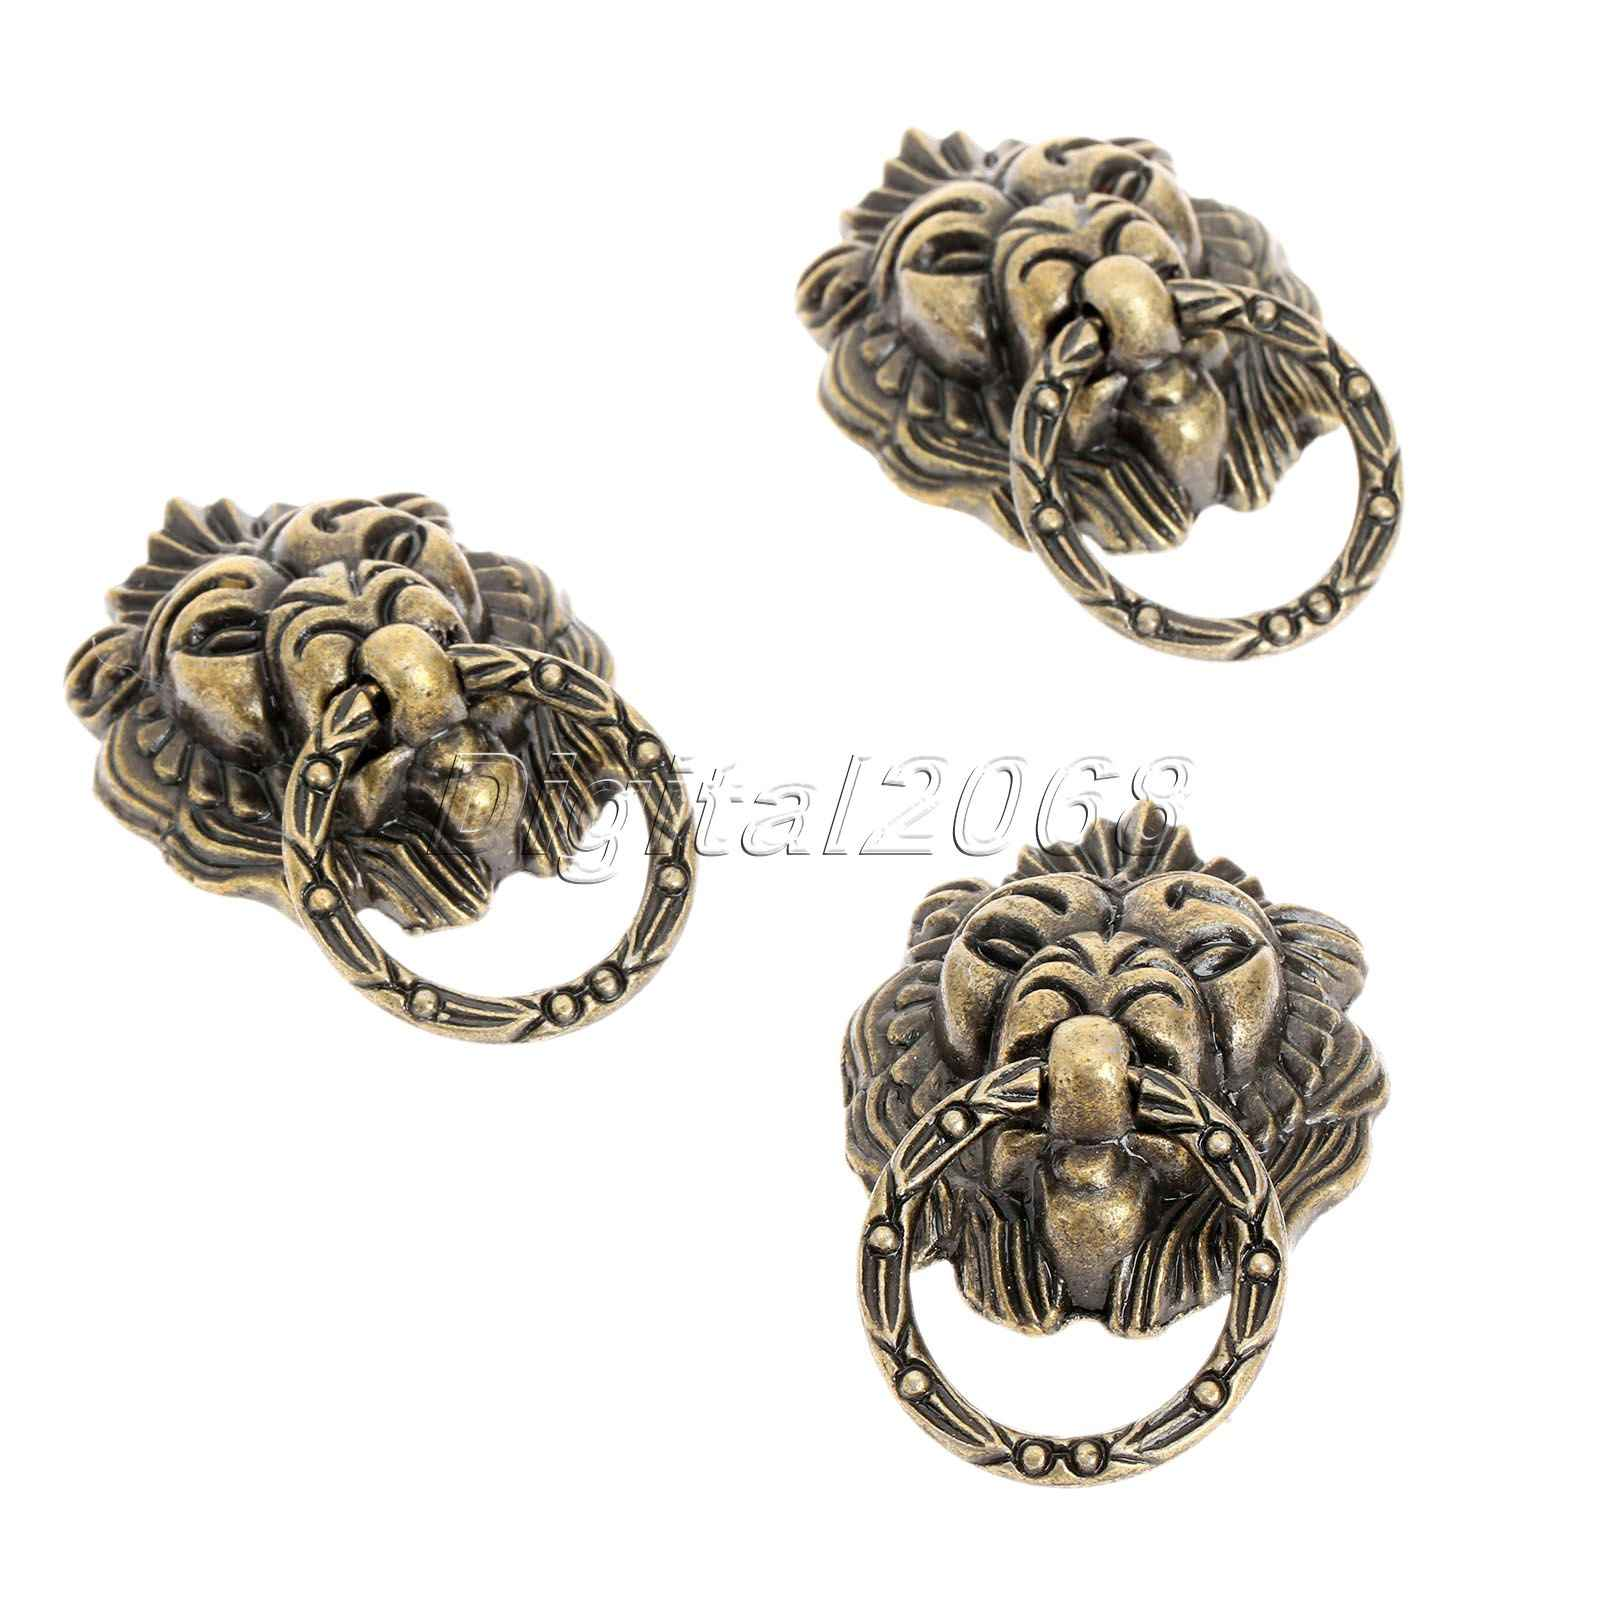 Bowarepro 6pcs Antique Bronze Lion Head Cabinet Handles Drawer